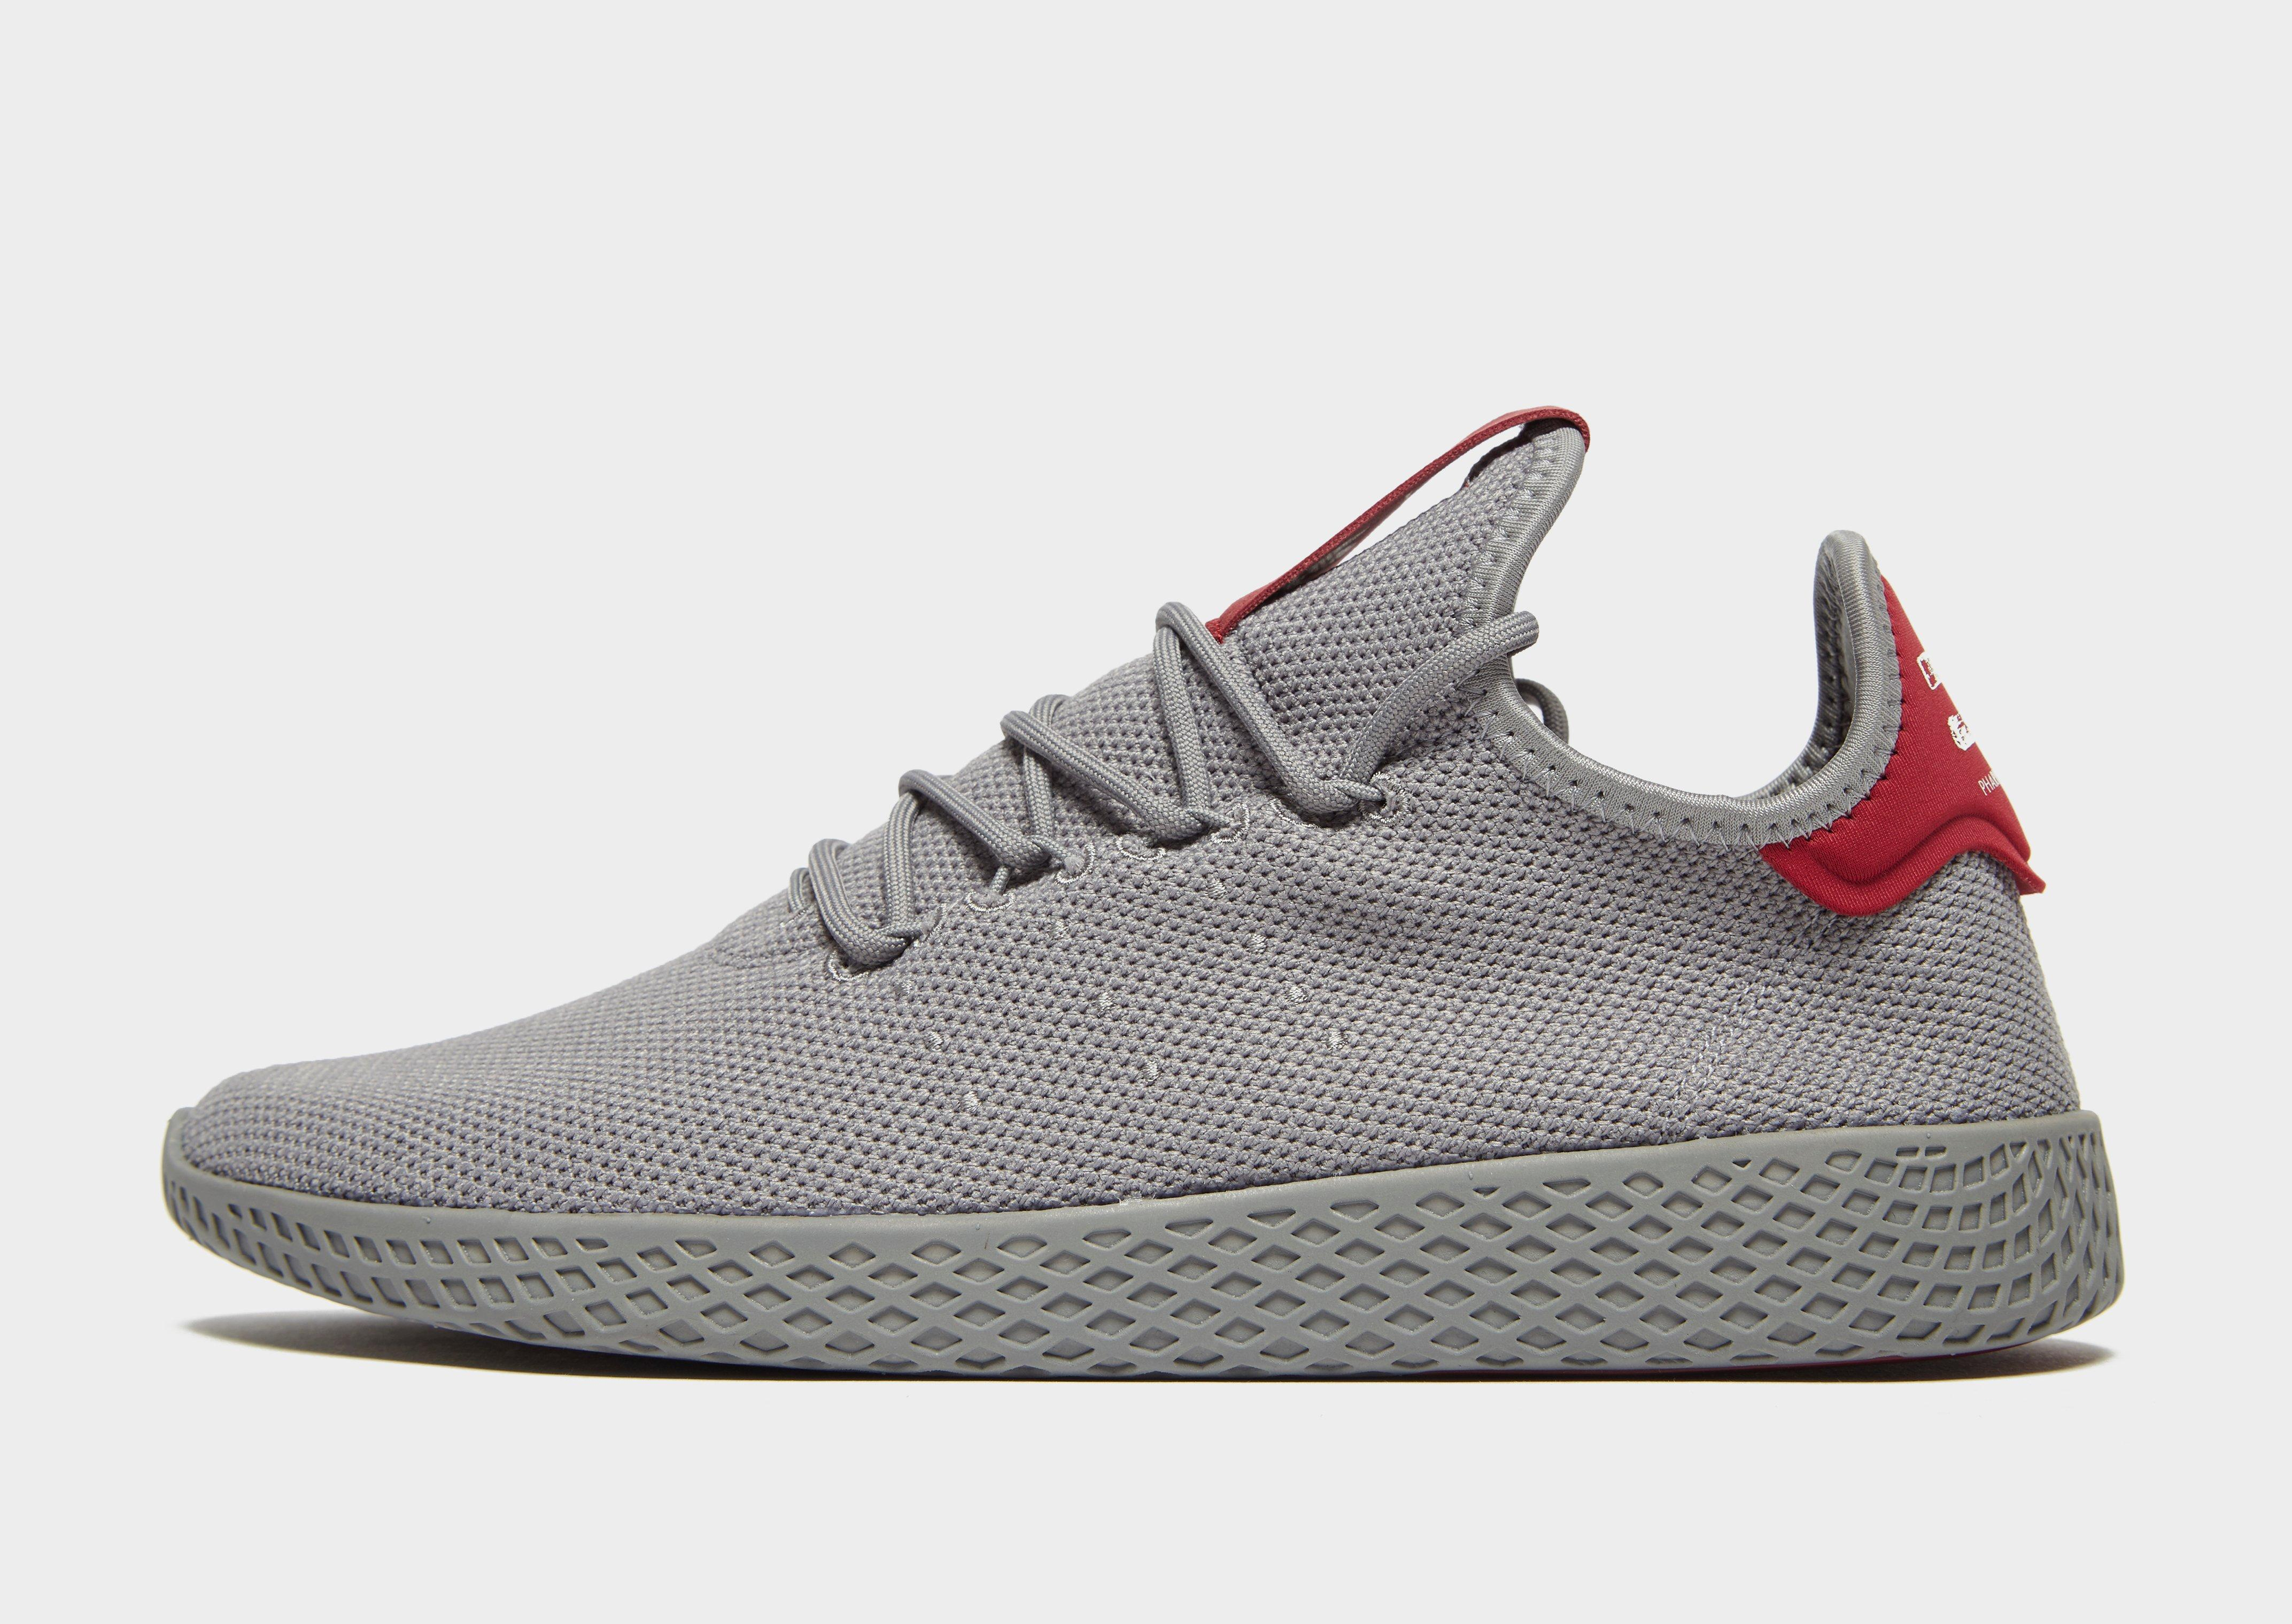 Adidas Originals Gray X Pharrell Williams Tennis Hu for men